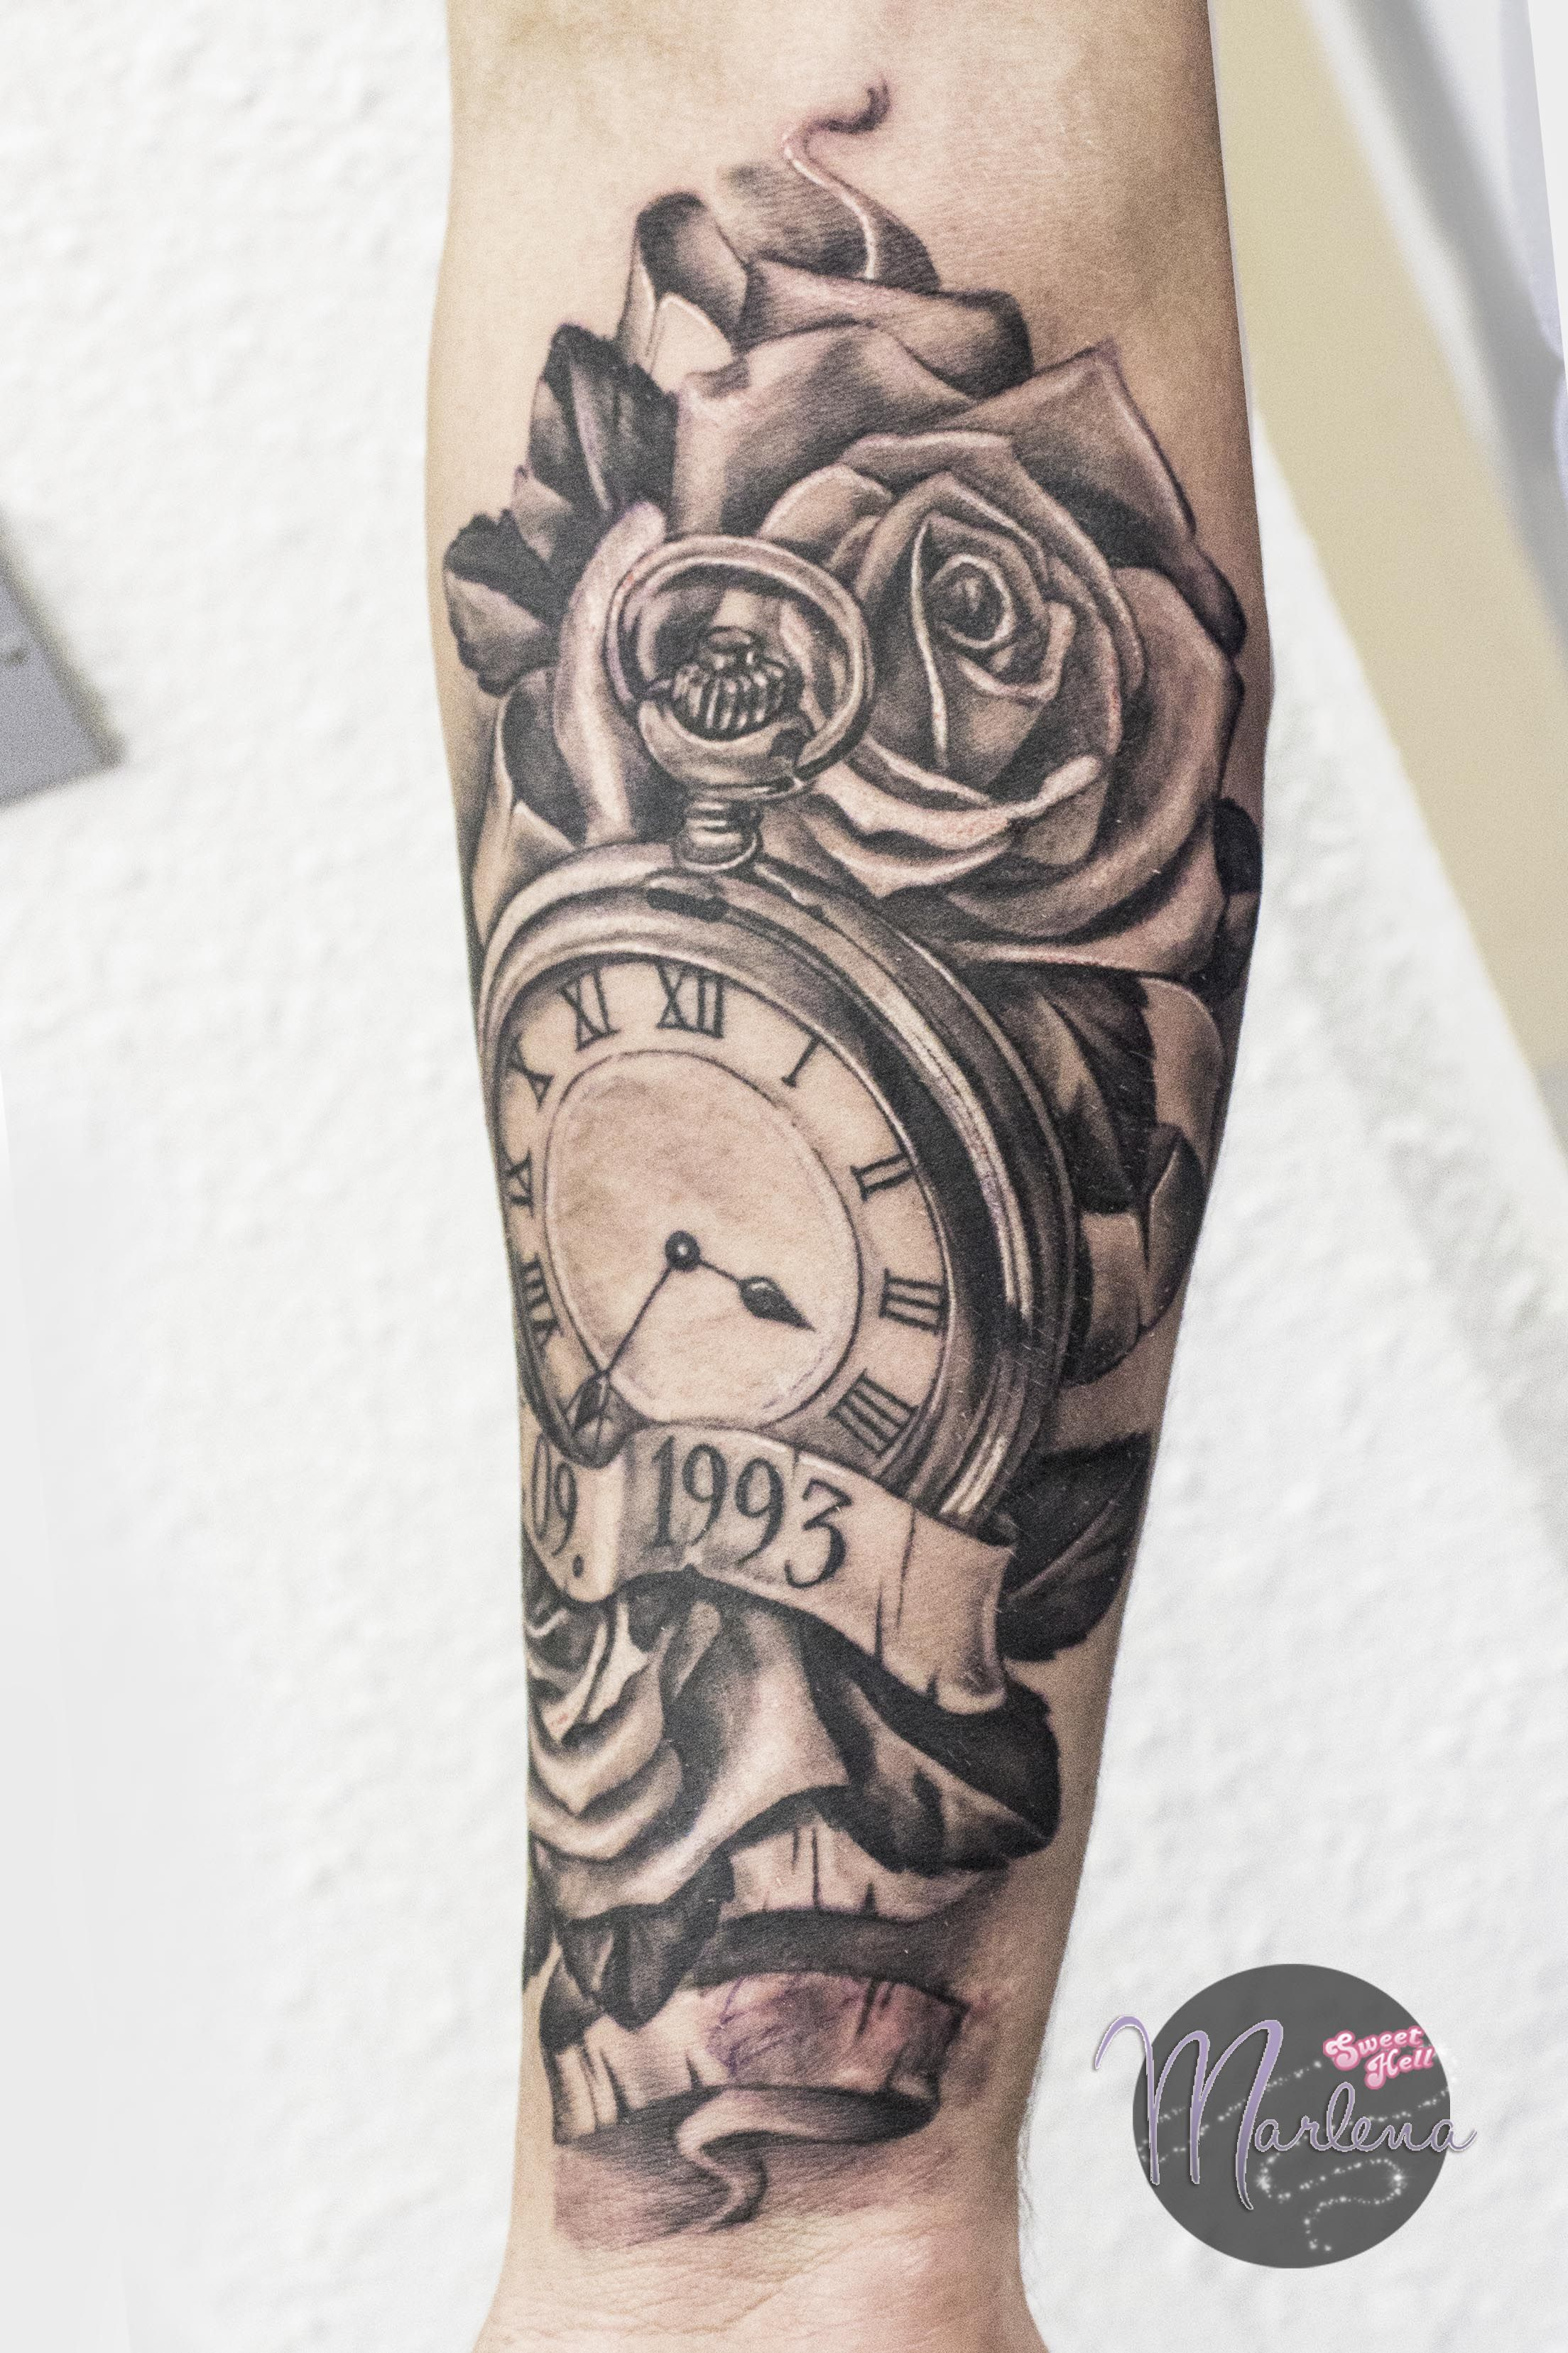 Memorial Tattoo Realistic Pocket Watch Roses And Birth Ideas And Designs